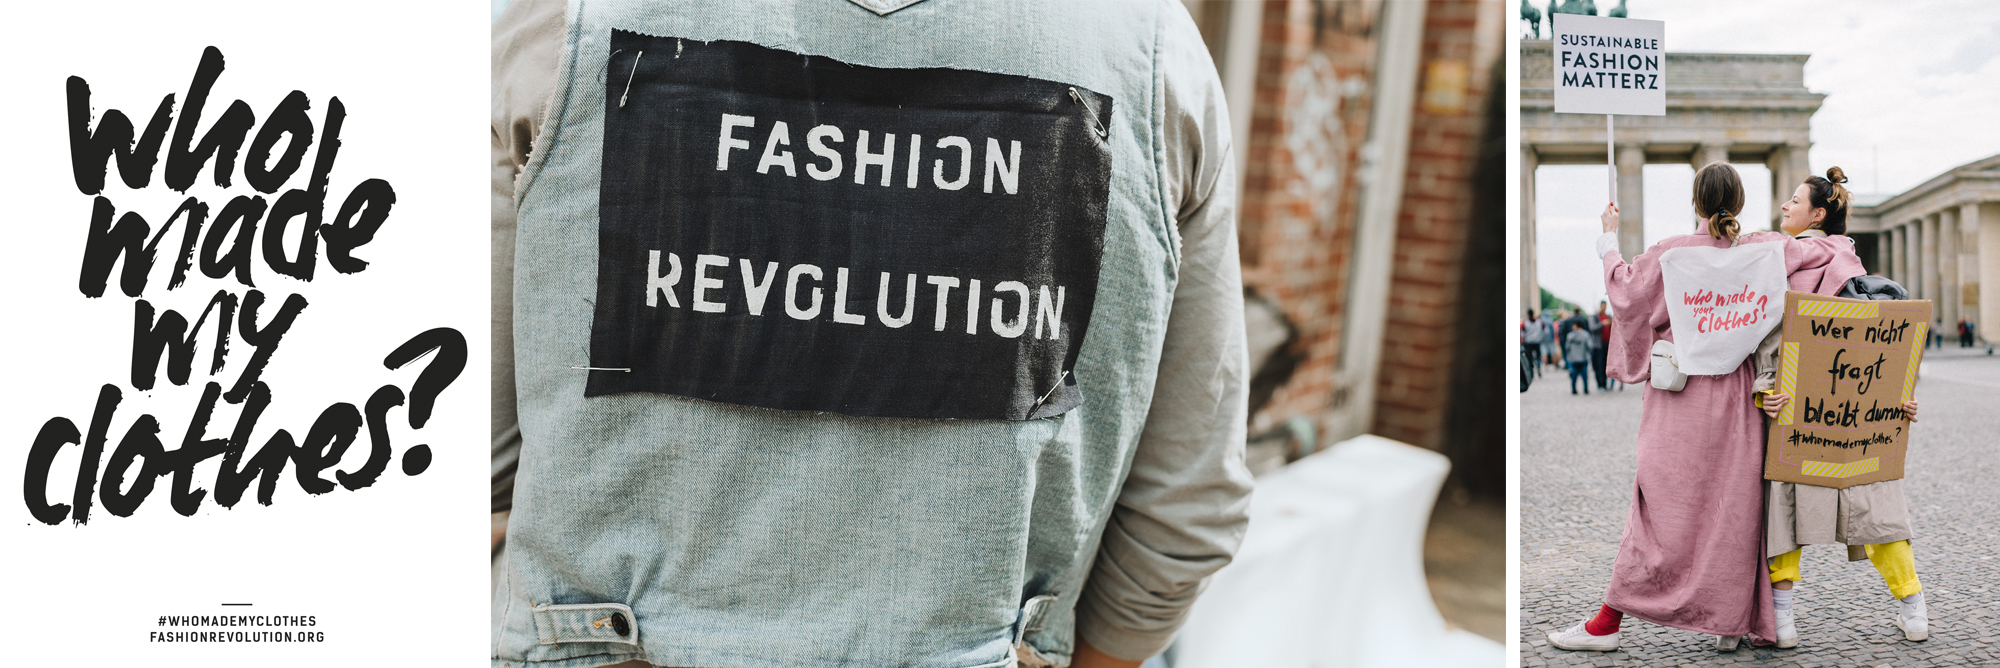 Fashion Revolution 2020 – now more than ever